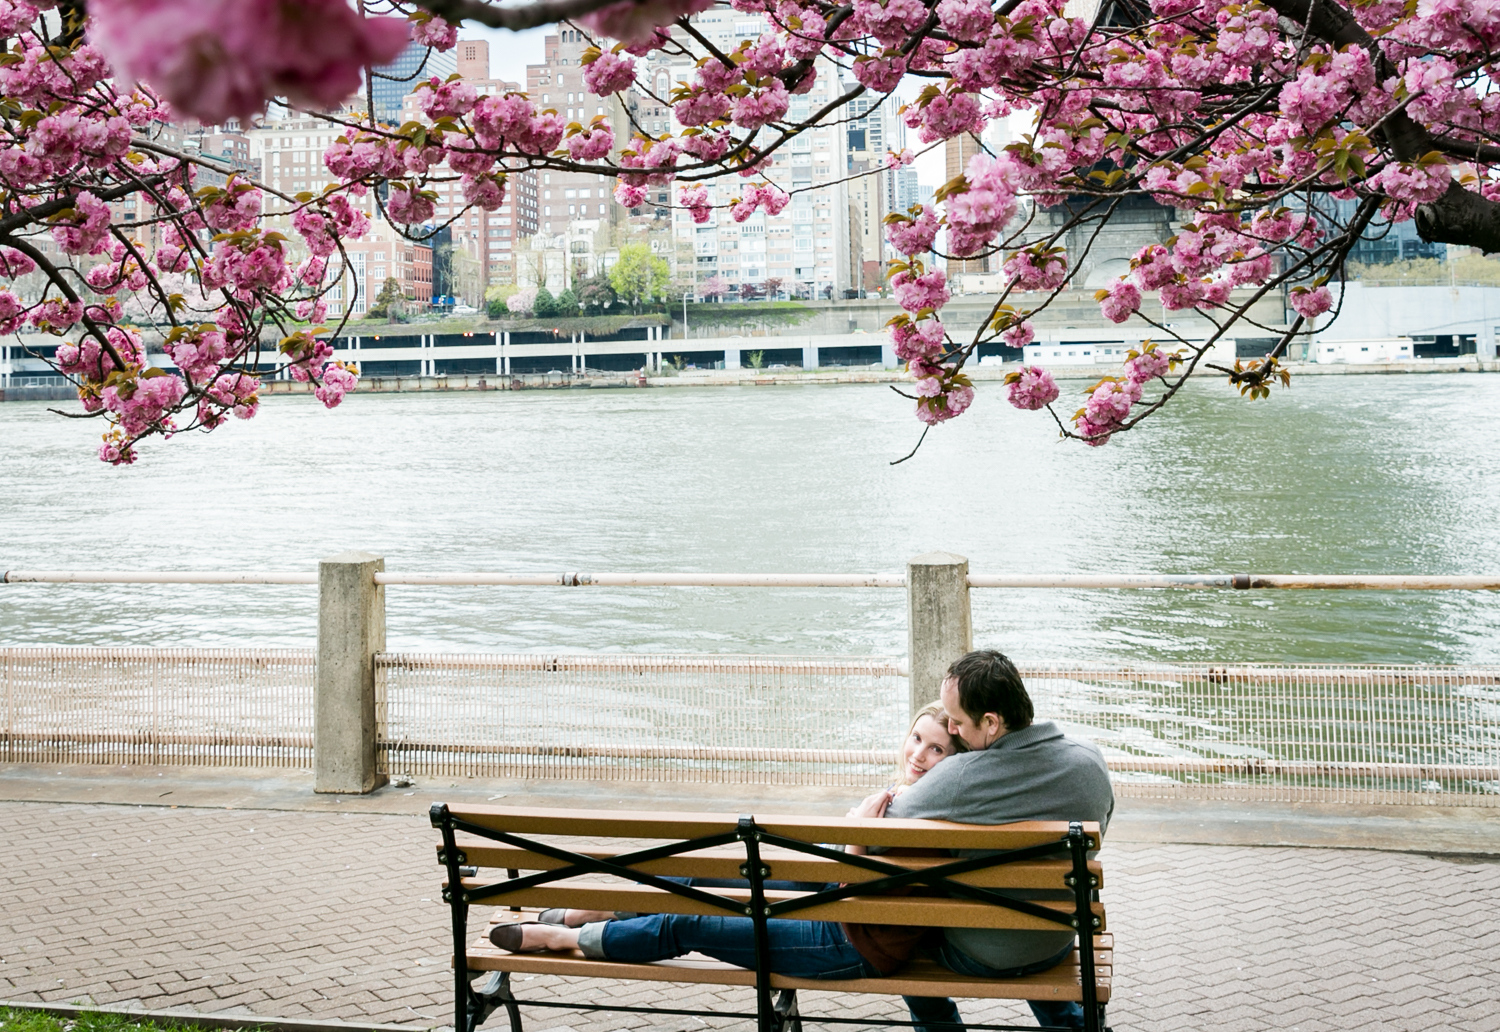 Couple sitting on bench with cherry blossom branches overhead